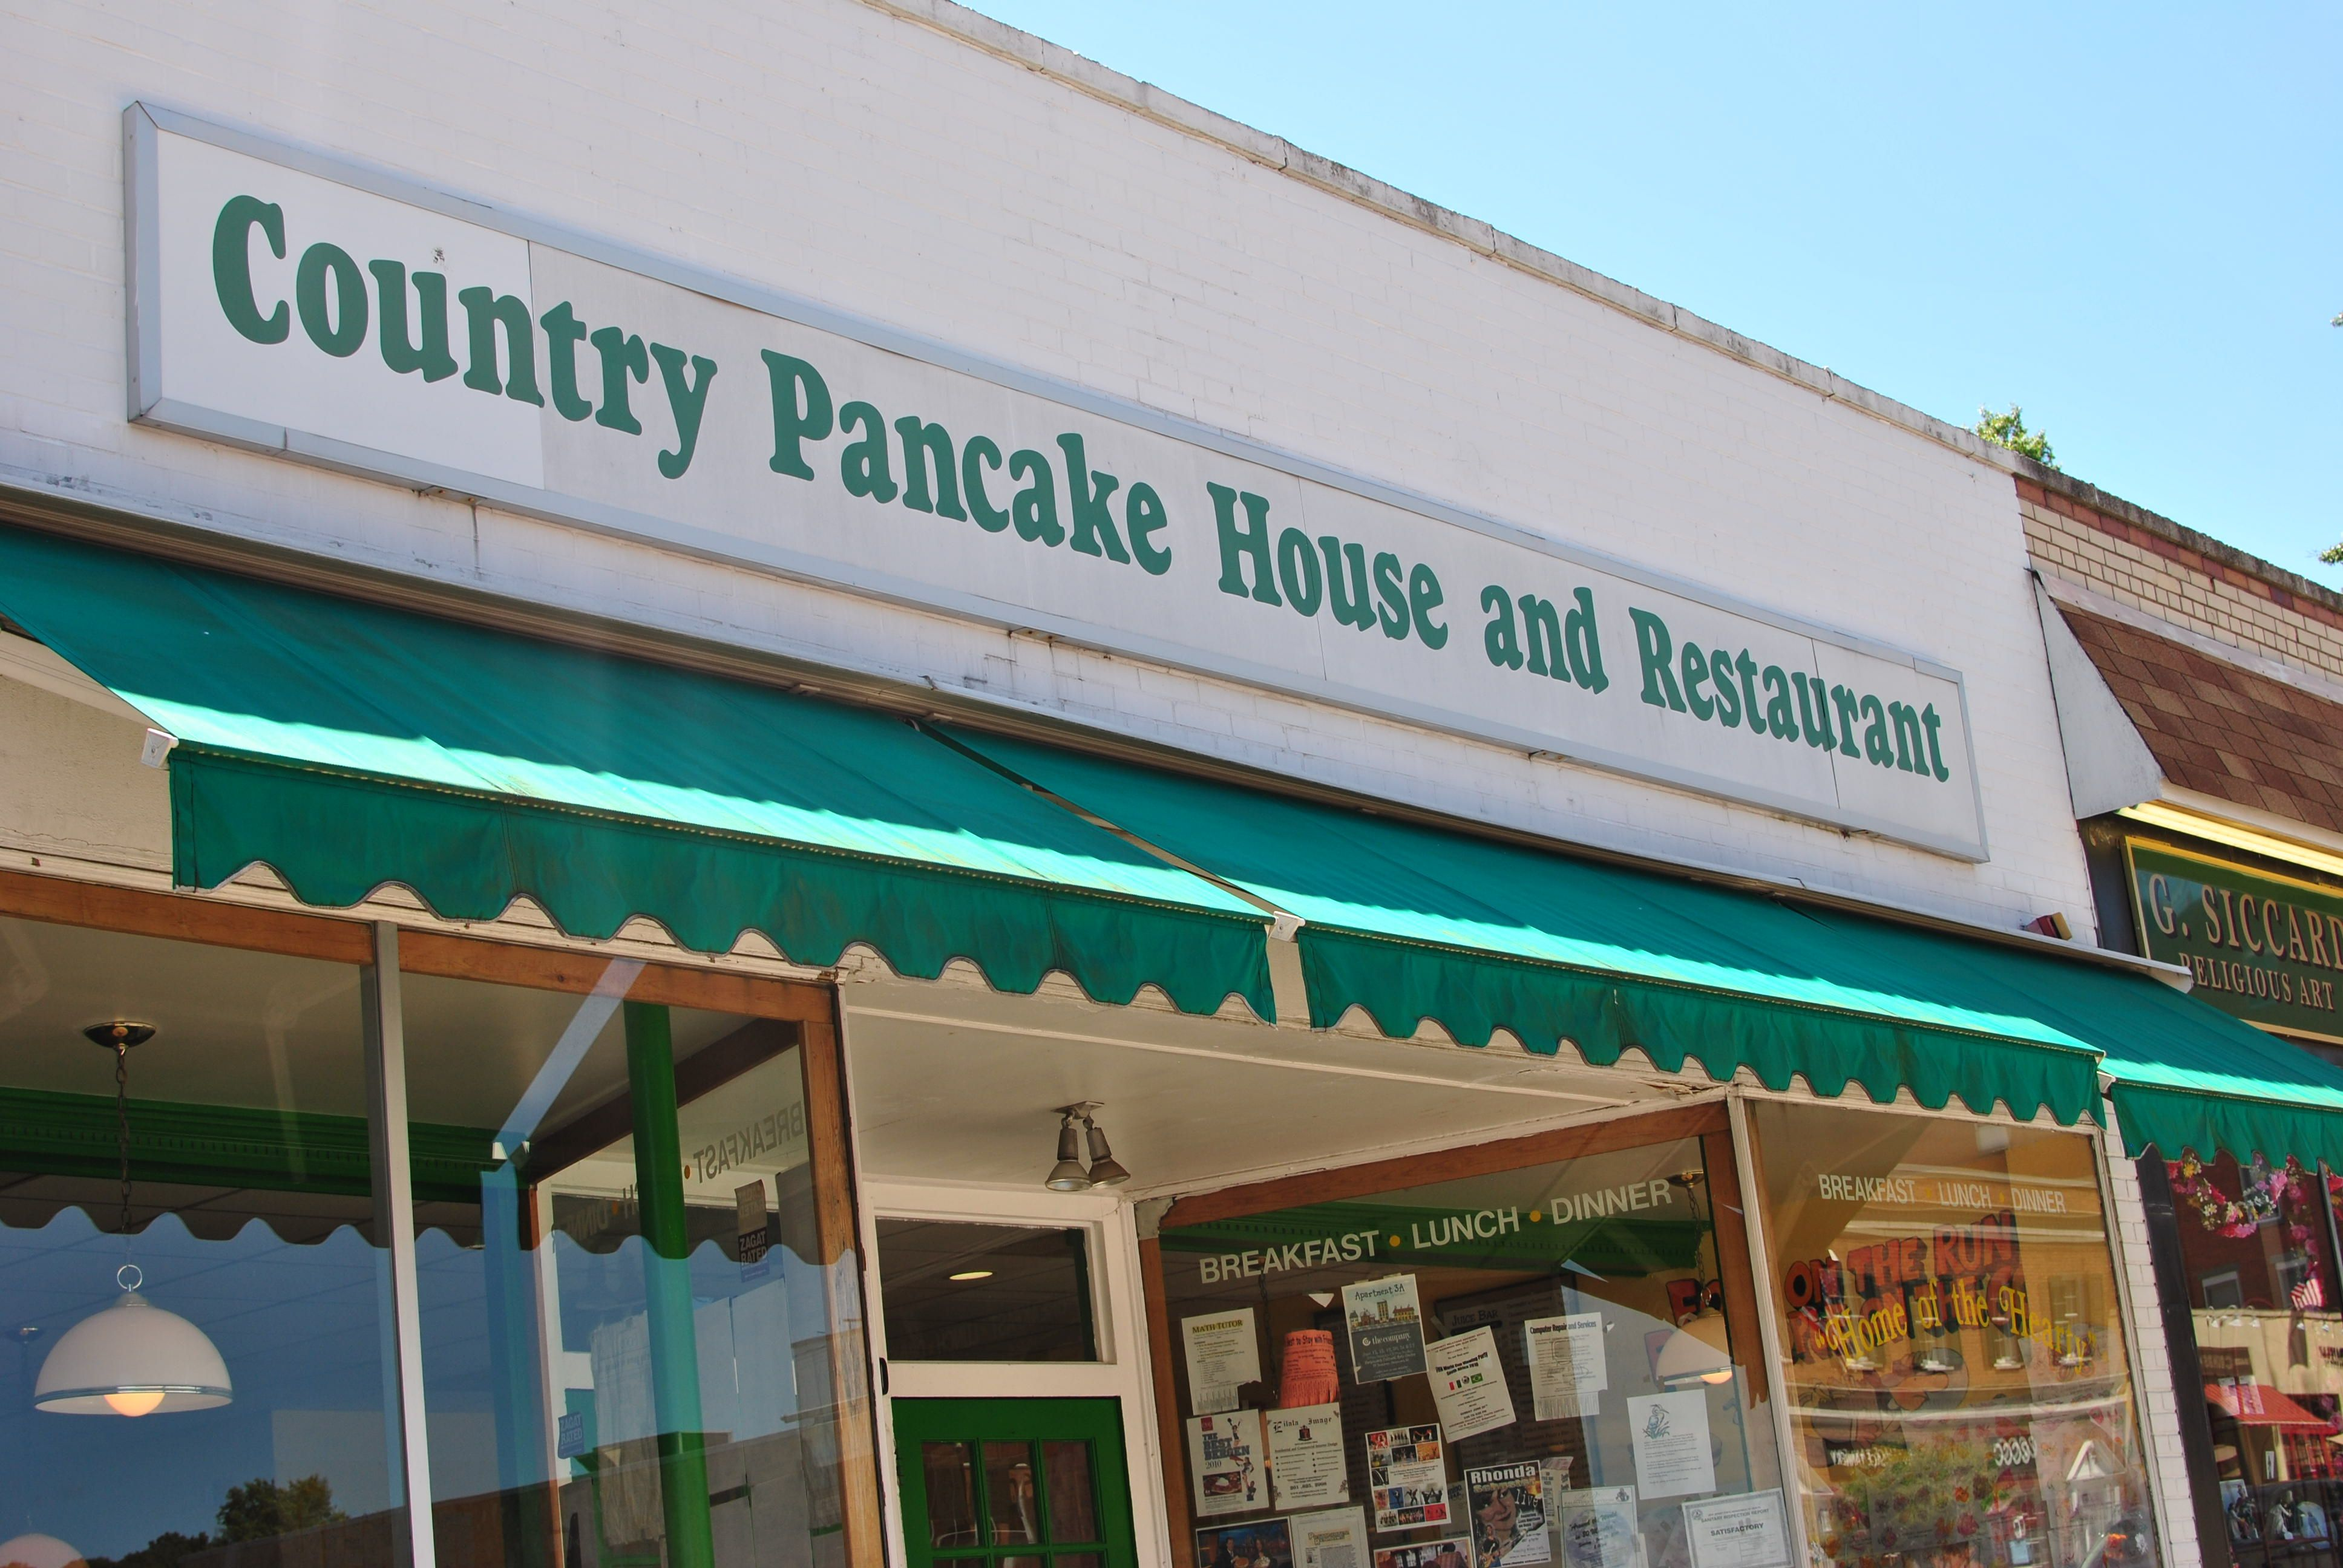 uncle bills u003c3 jersey shore pancakes u003c3 rp for you by http fadi